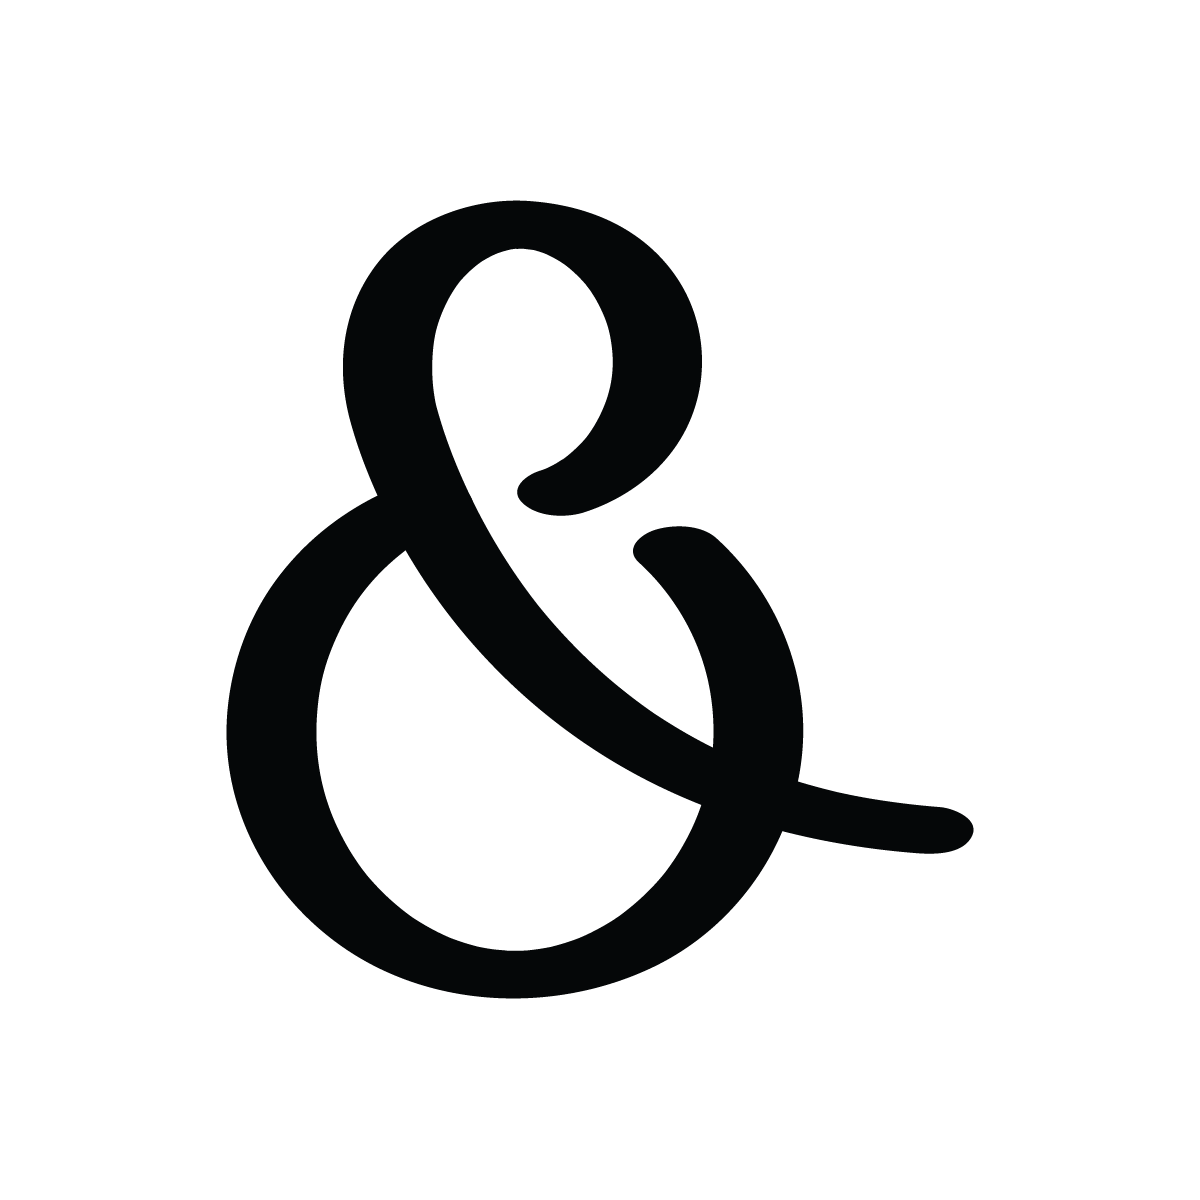 Ampersand_Grid_02-07